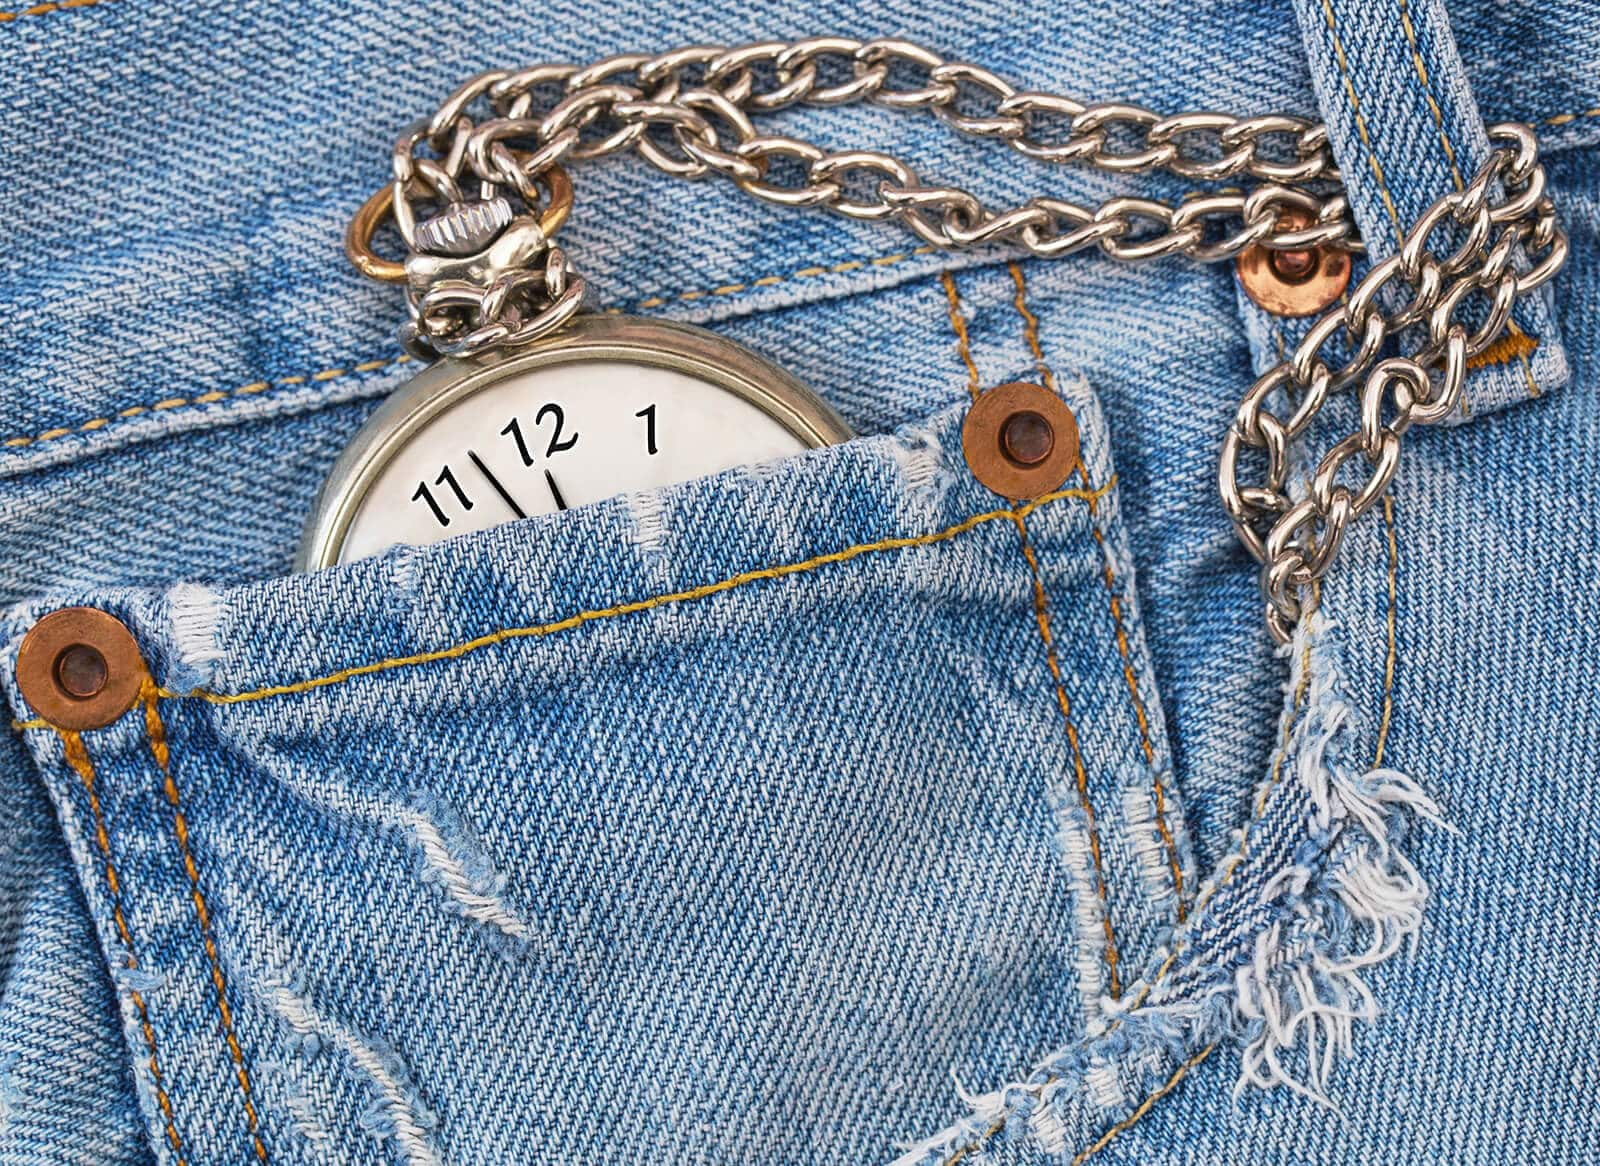 How to wear a pocket watch with jeans or pants